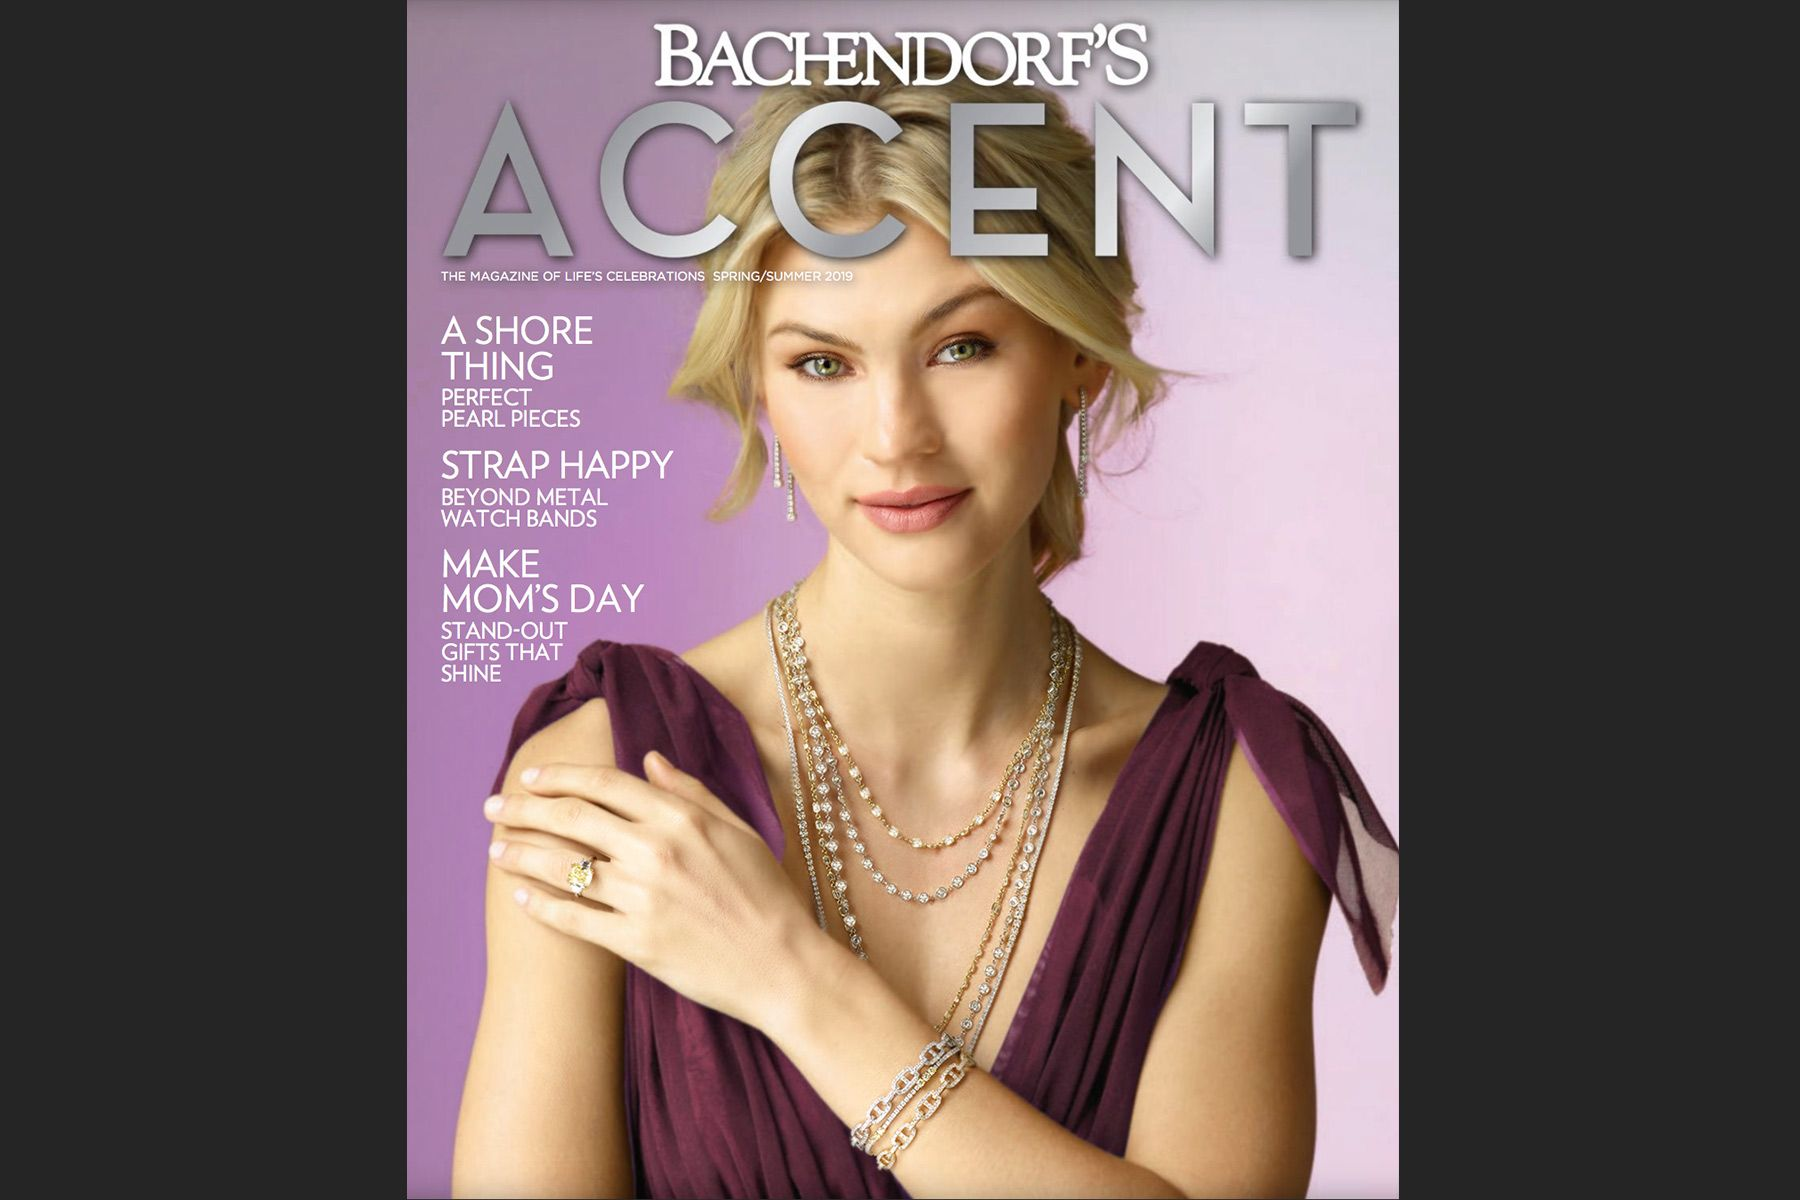 Accent-Cover.1I.jpg